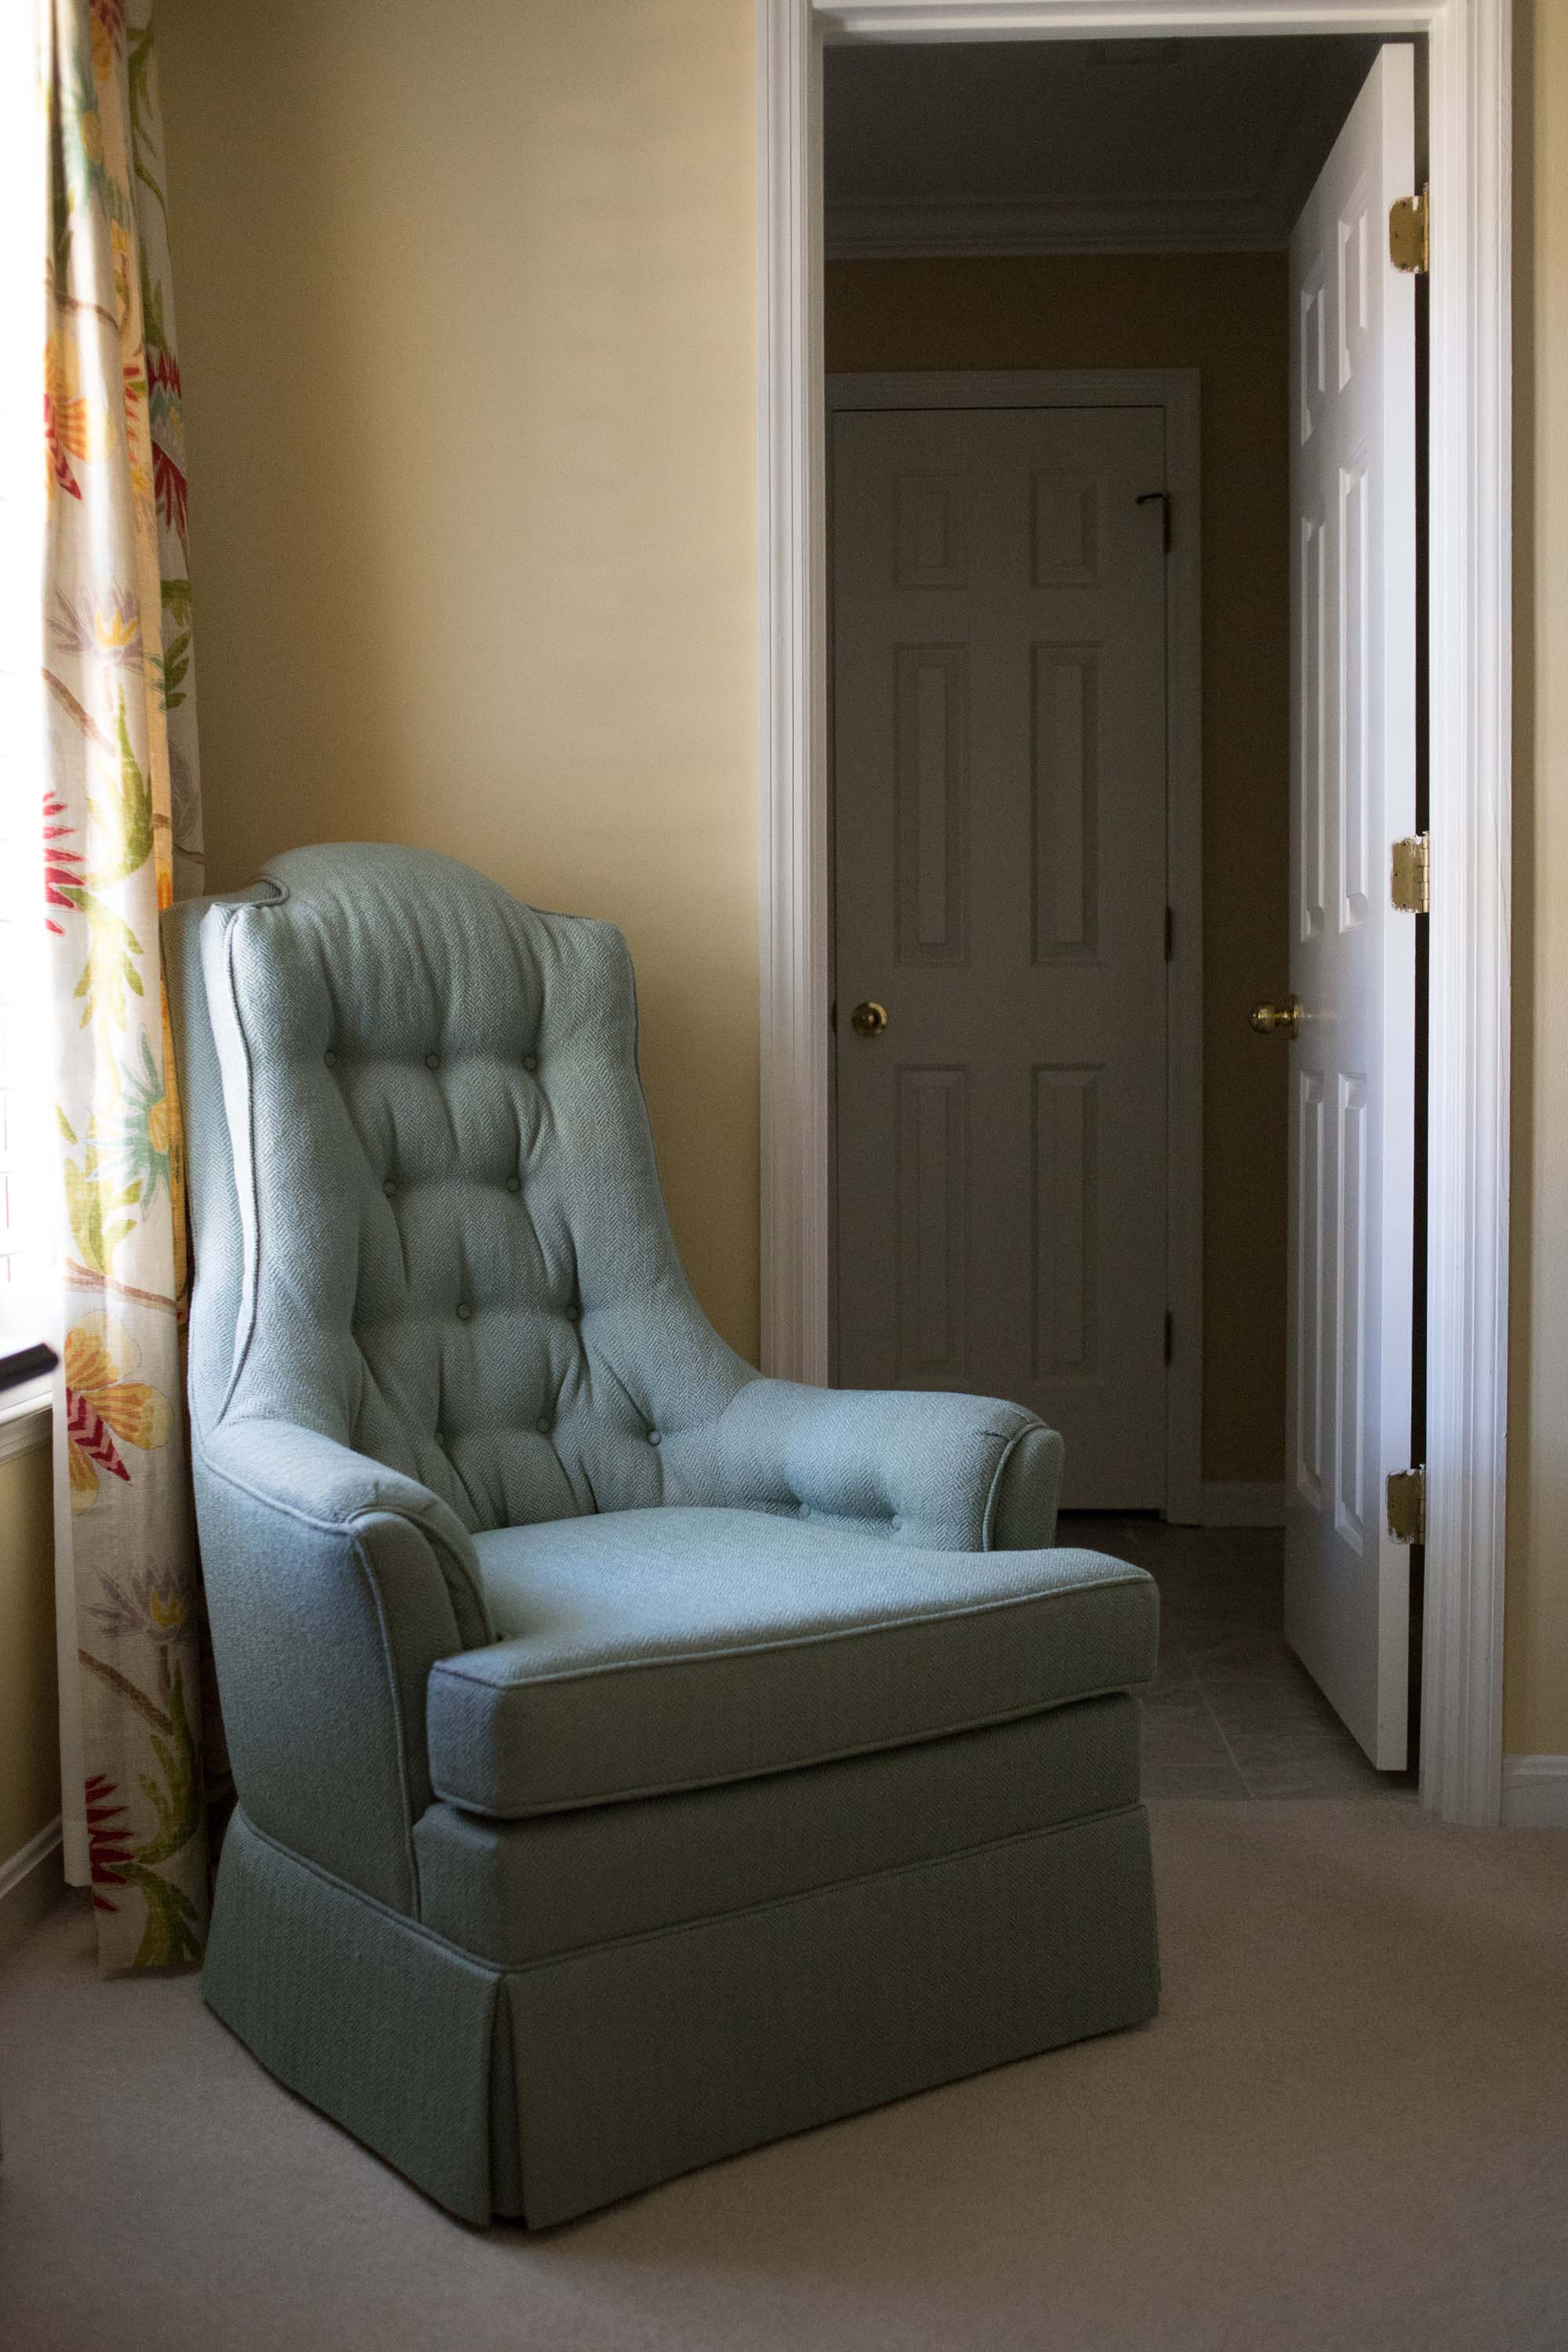 Recovered Chair with Custom Window Treatments